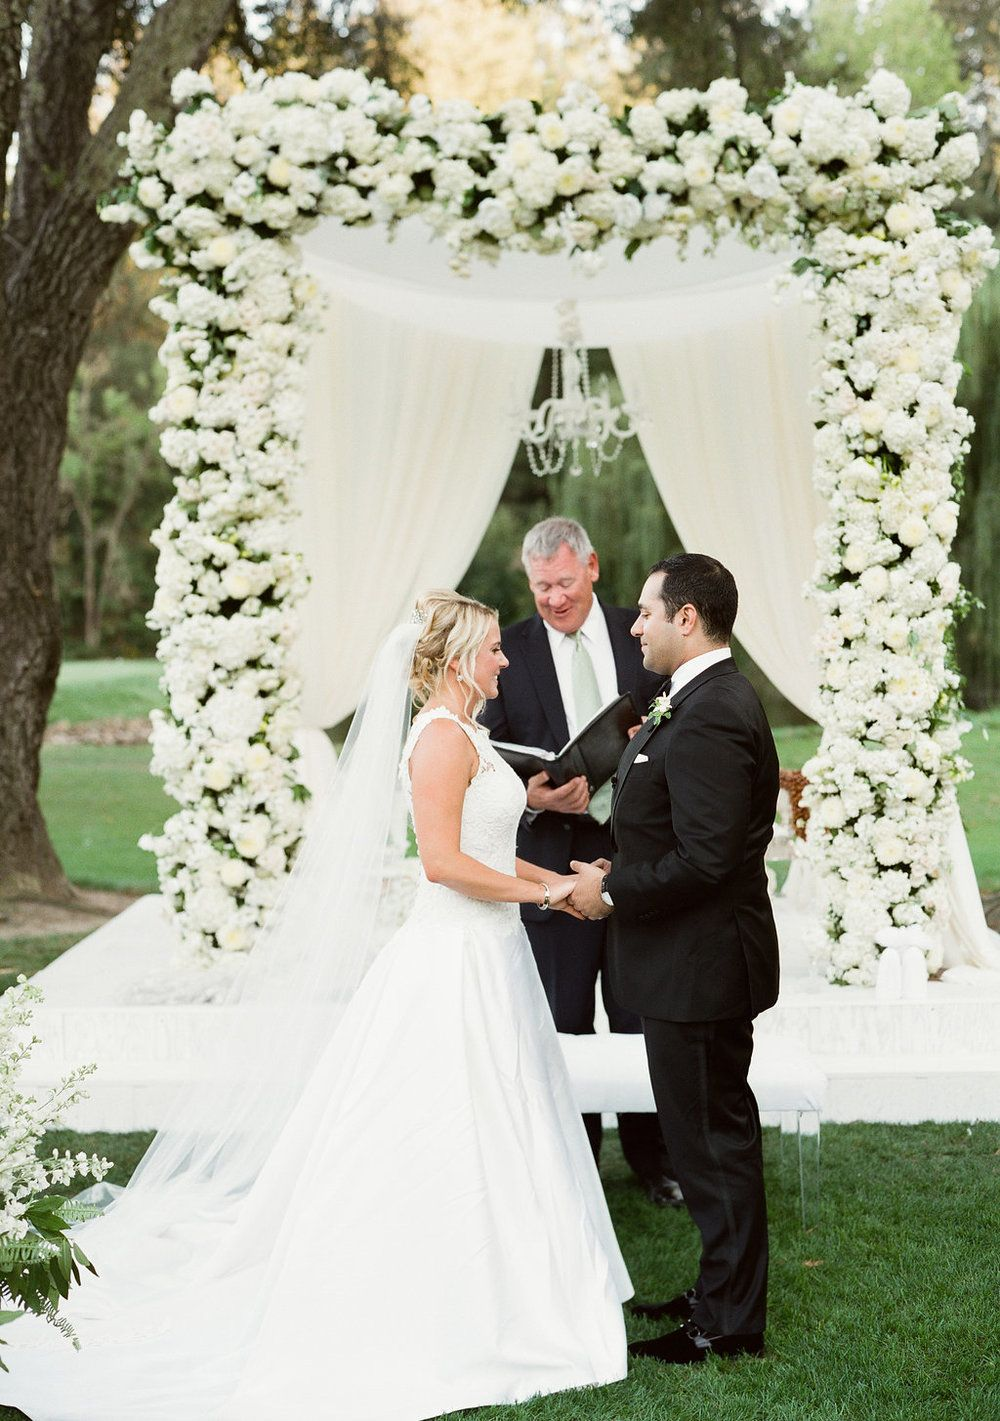 Pin by Mandy Li on Ceremony in 2019 Wedding, Chuppah